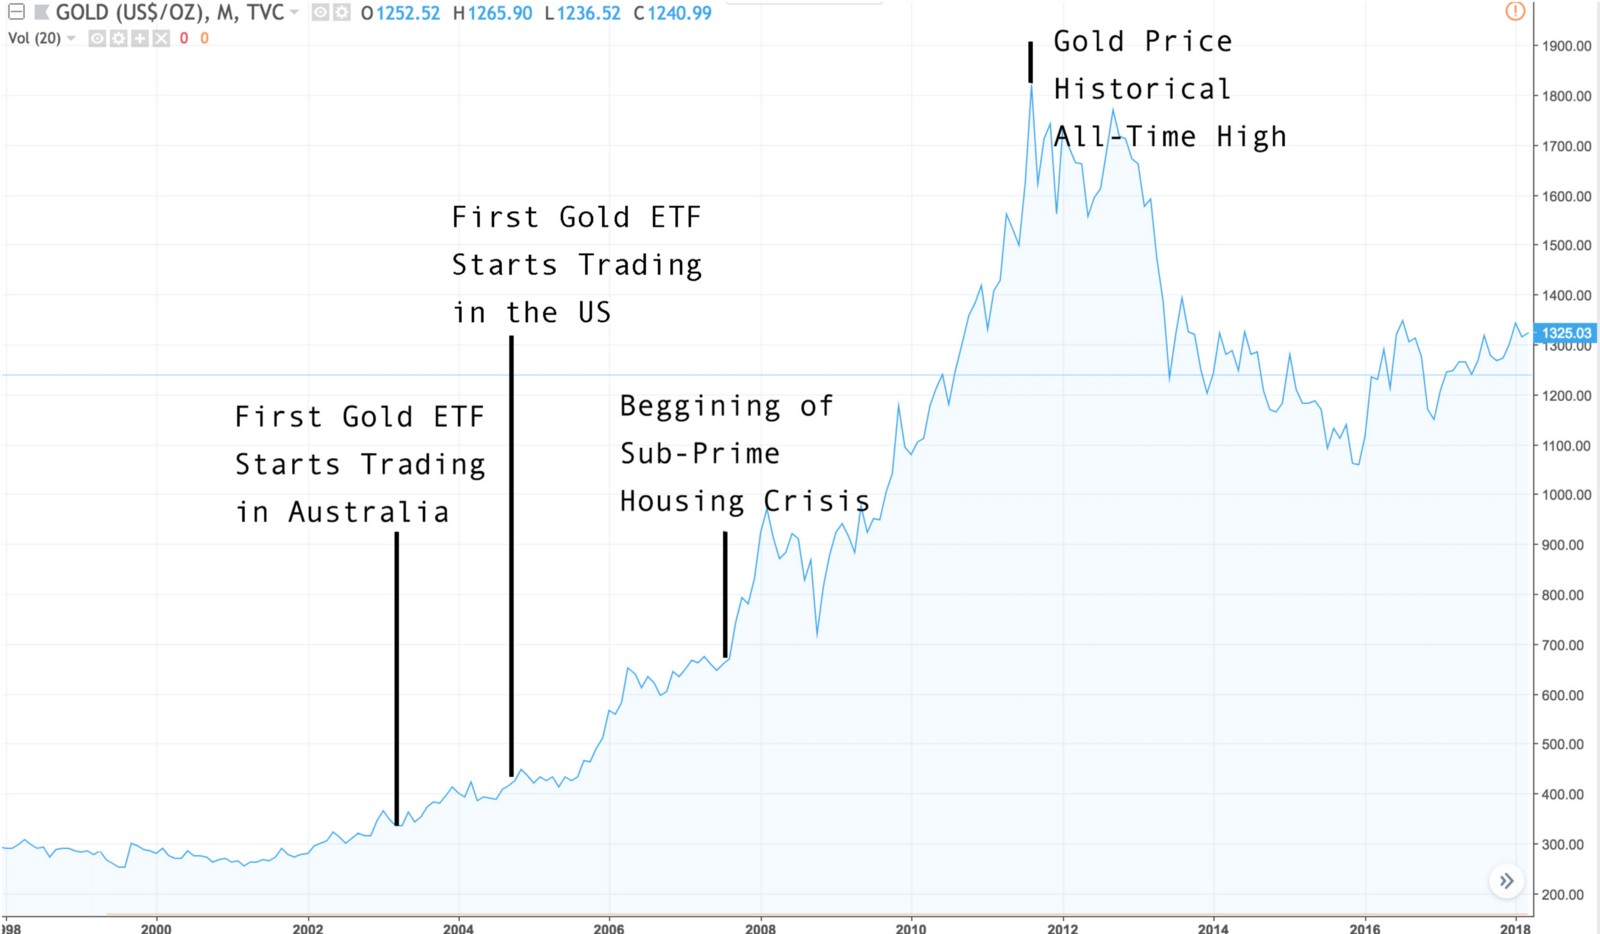 As You Can See The Launching Of Gold Etfs Preceded An Enormous Rally In Price Some Ysts Suggest That Ease Access To